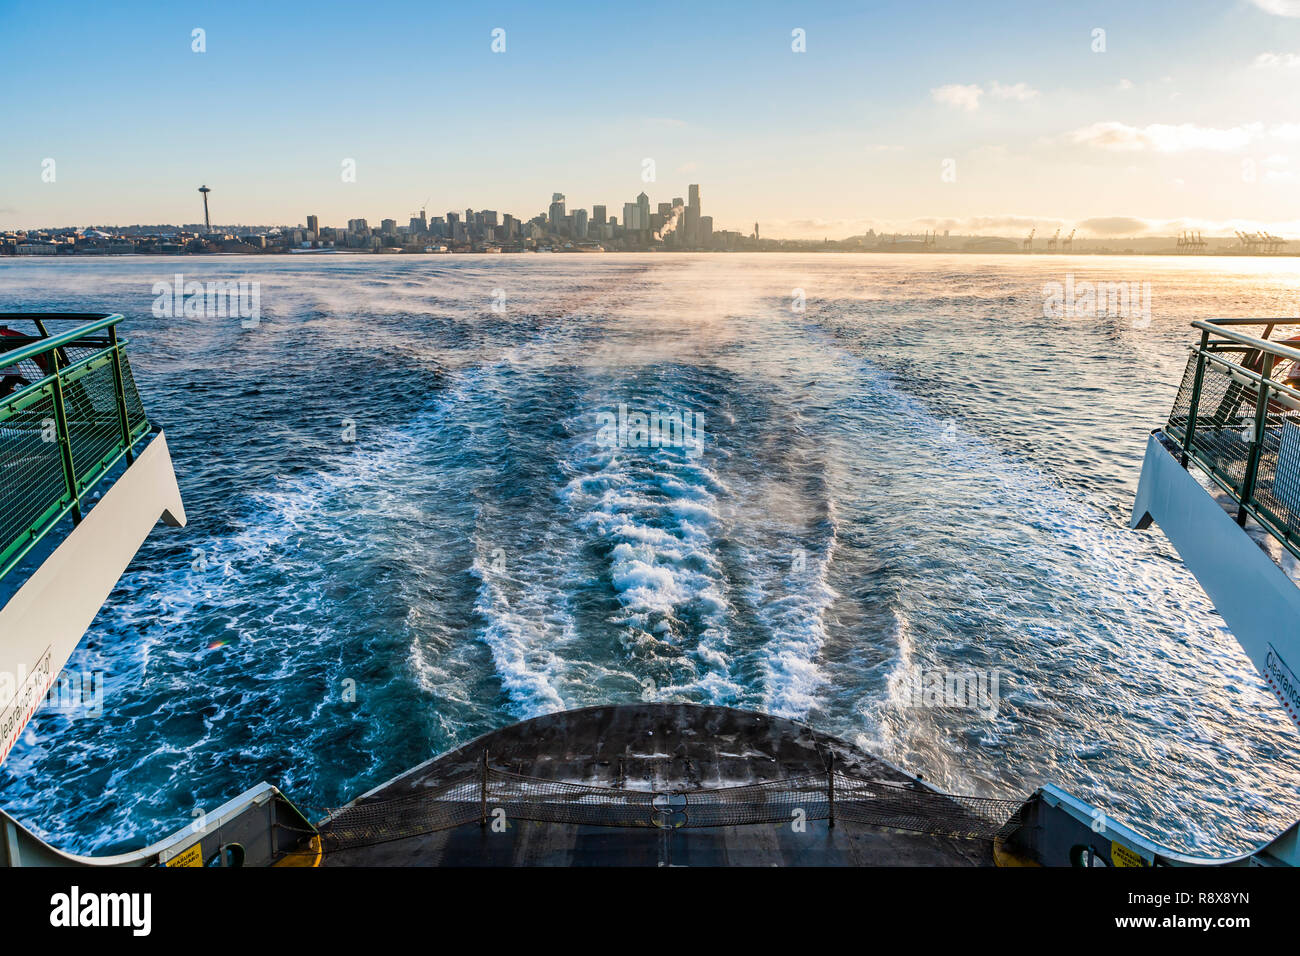 Looking back at Downtown Seattle, Washington, USA from a Washington State ferry on a cool clear Fall morning. - Stock Image